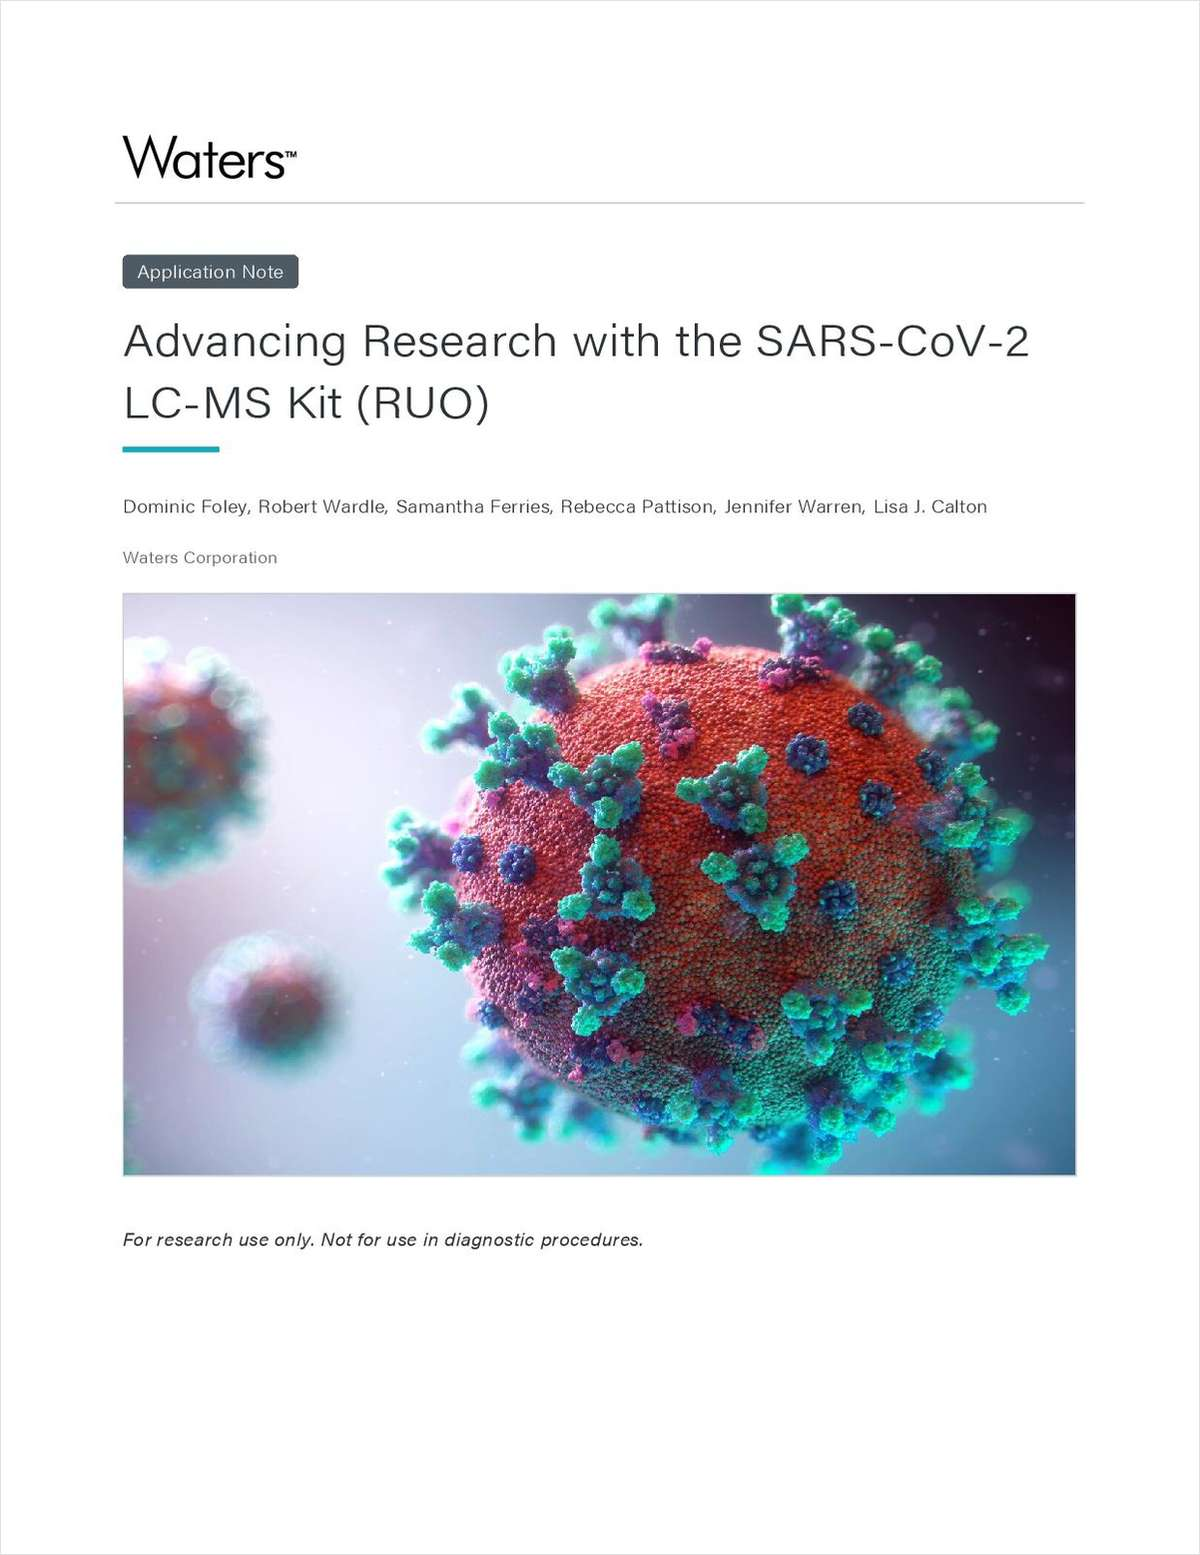 Advancing Research with the SARS-CoV-2 LC-MS Kit (RUO)